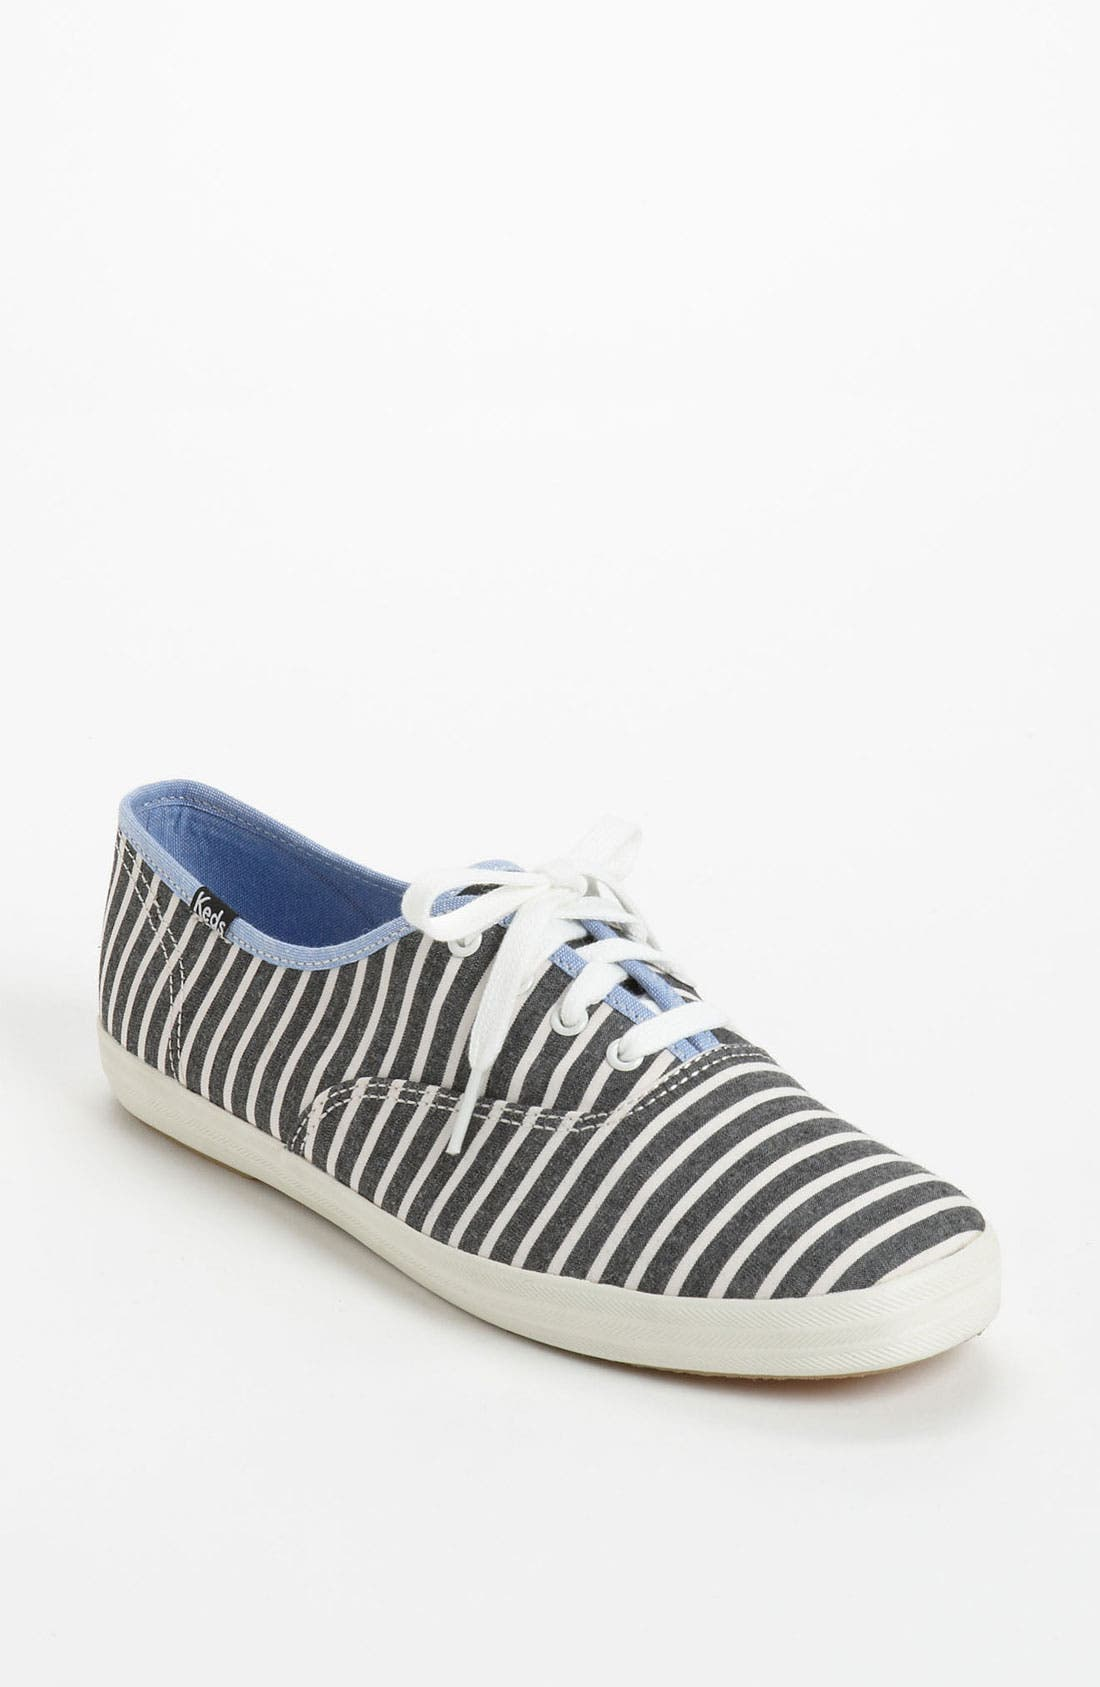 Main Image - Keds® 'Champion Prep Stripe' Sneaker (Women)